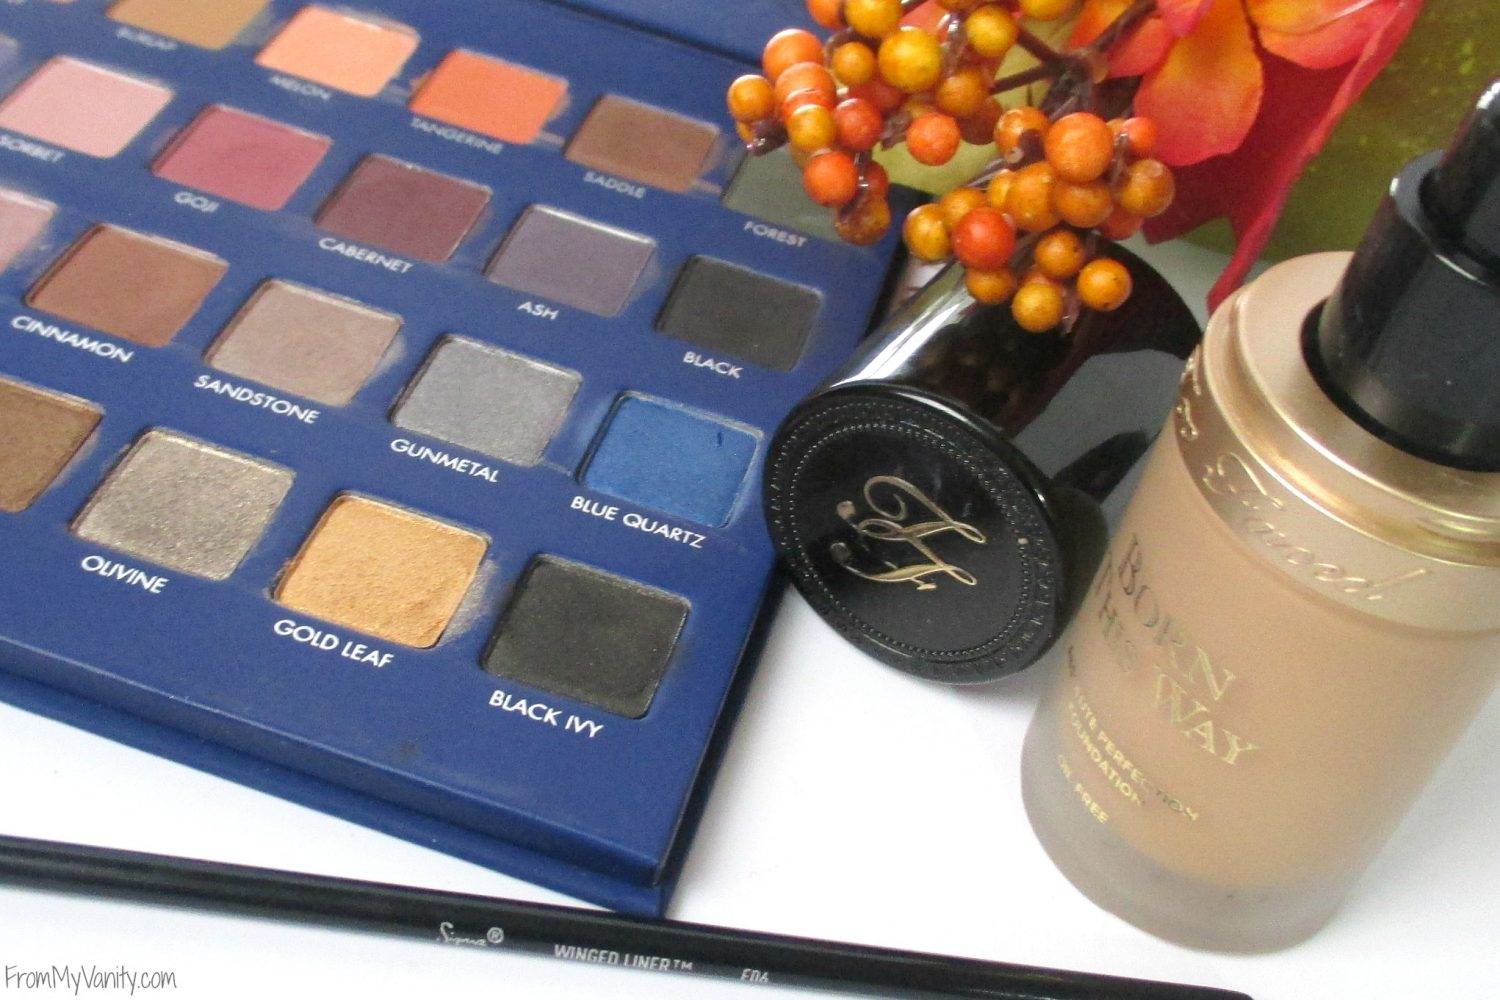 Monthly Beauty Favorites // October 2015 // Too Faced foundation & LORAC Mega Pro 2 palette // FromMyVanity.com